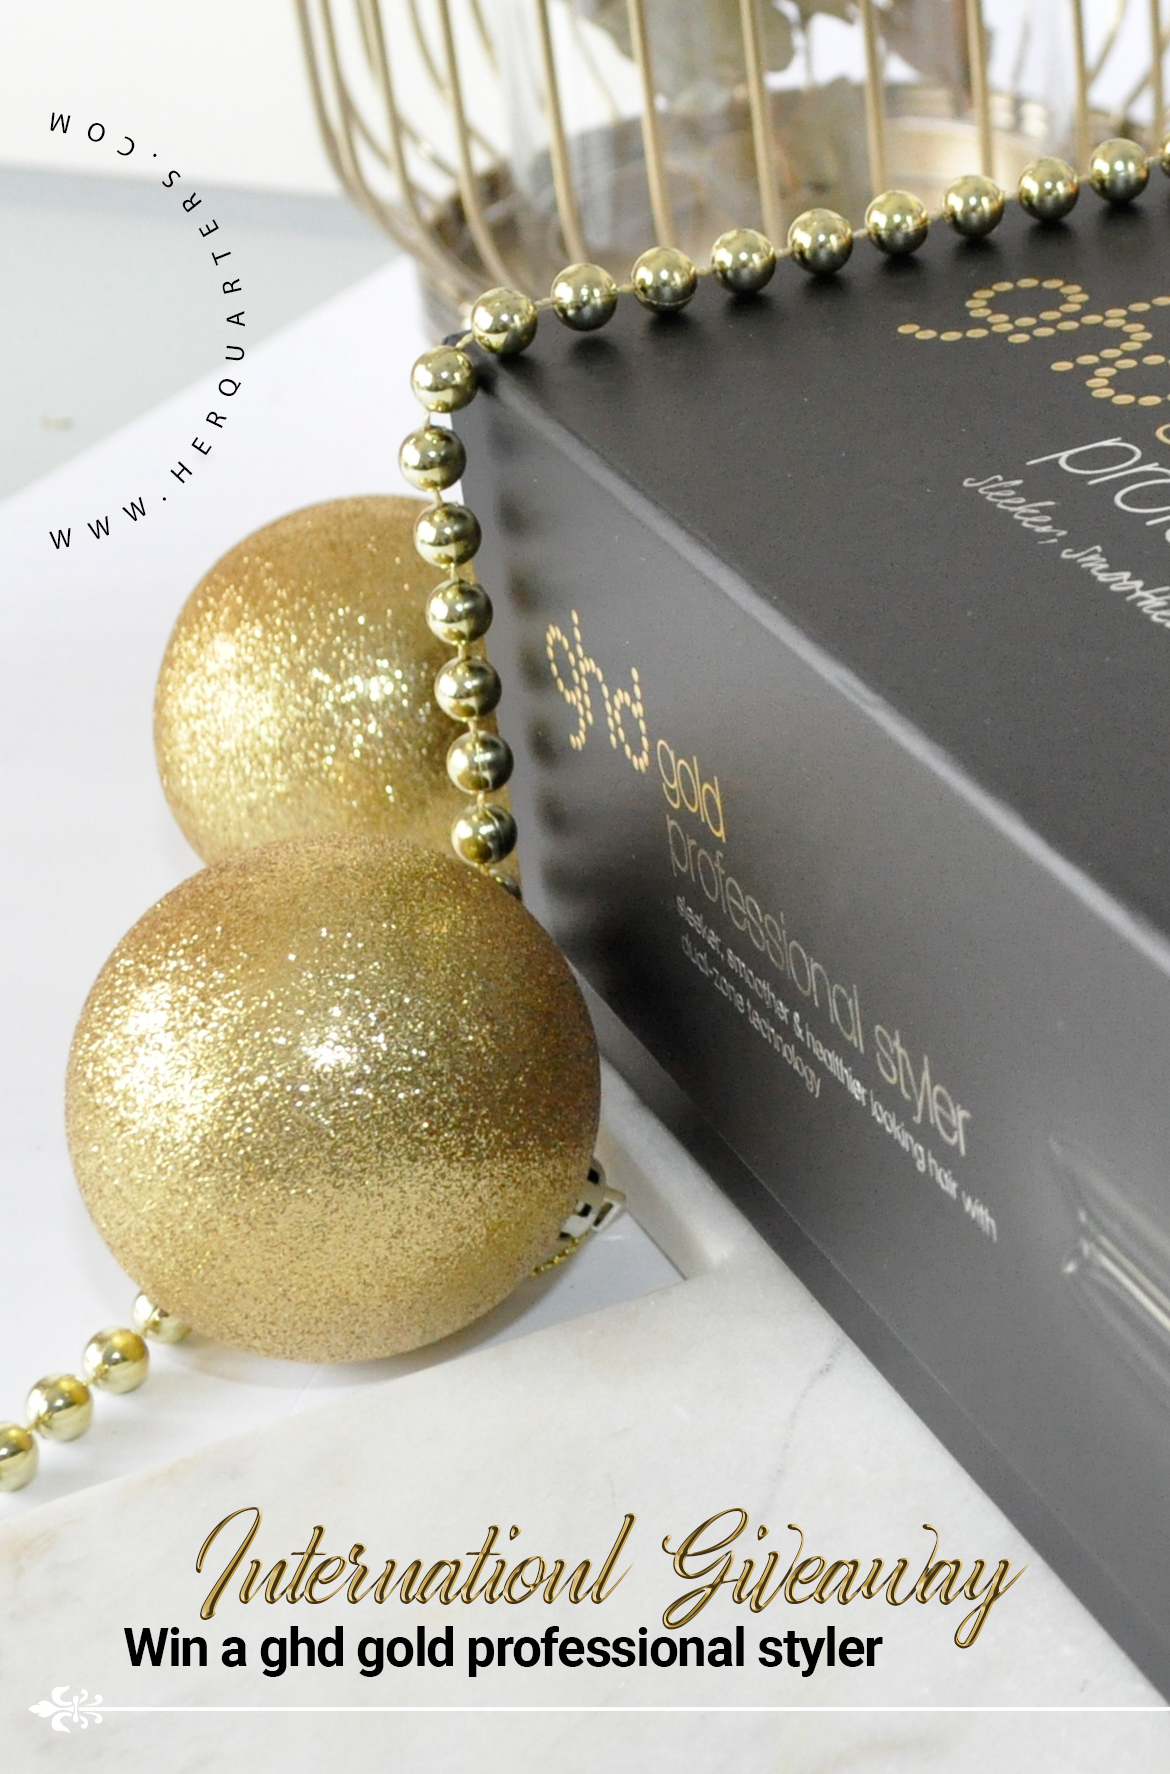 ghd giveaway pinterest